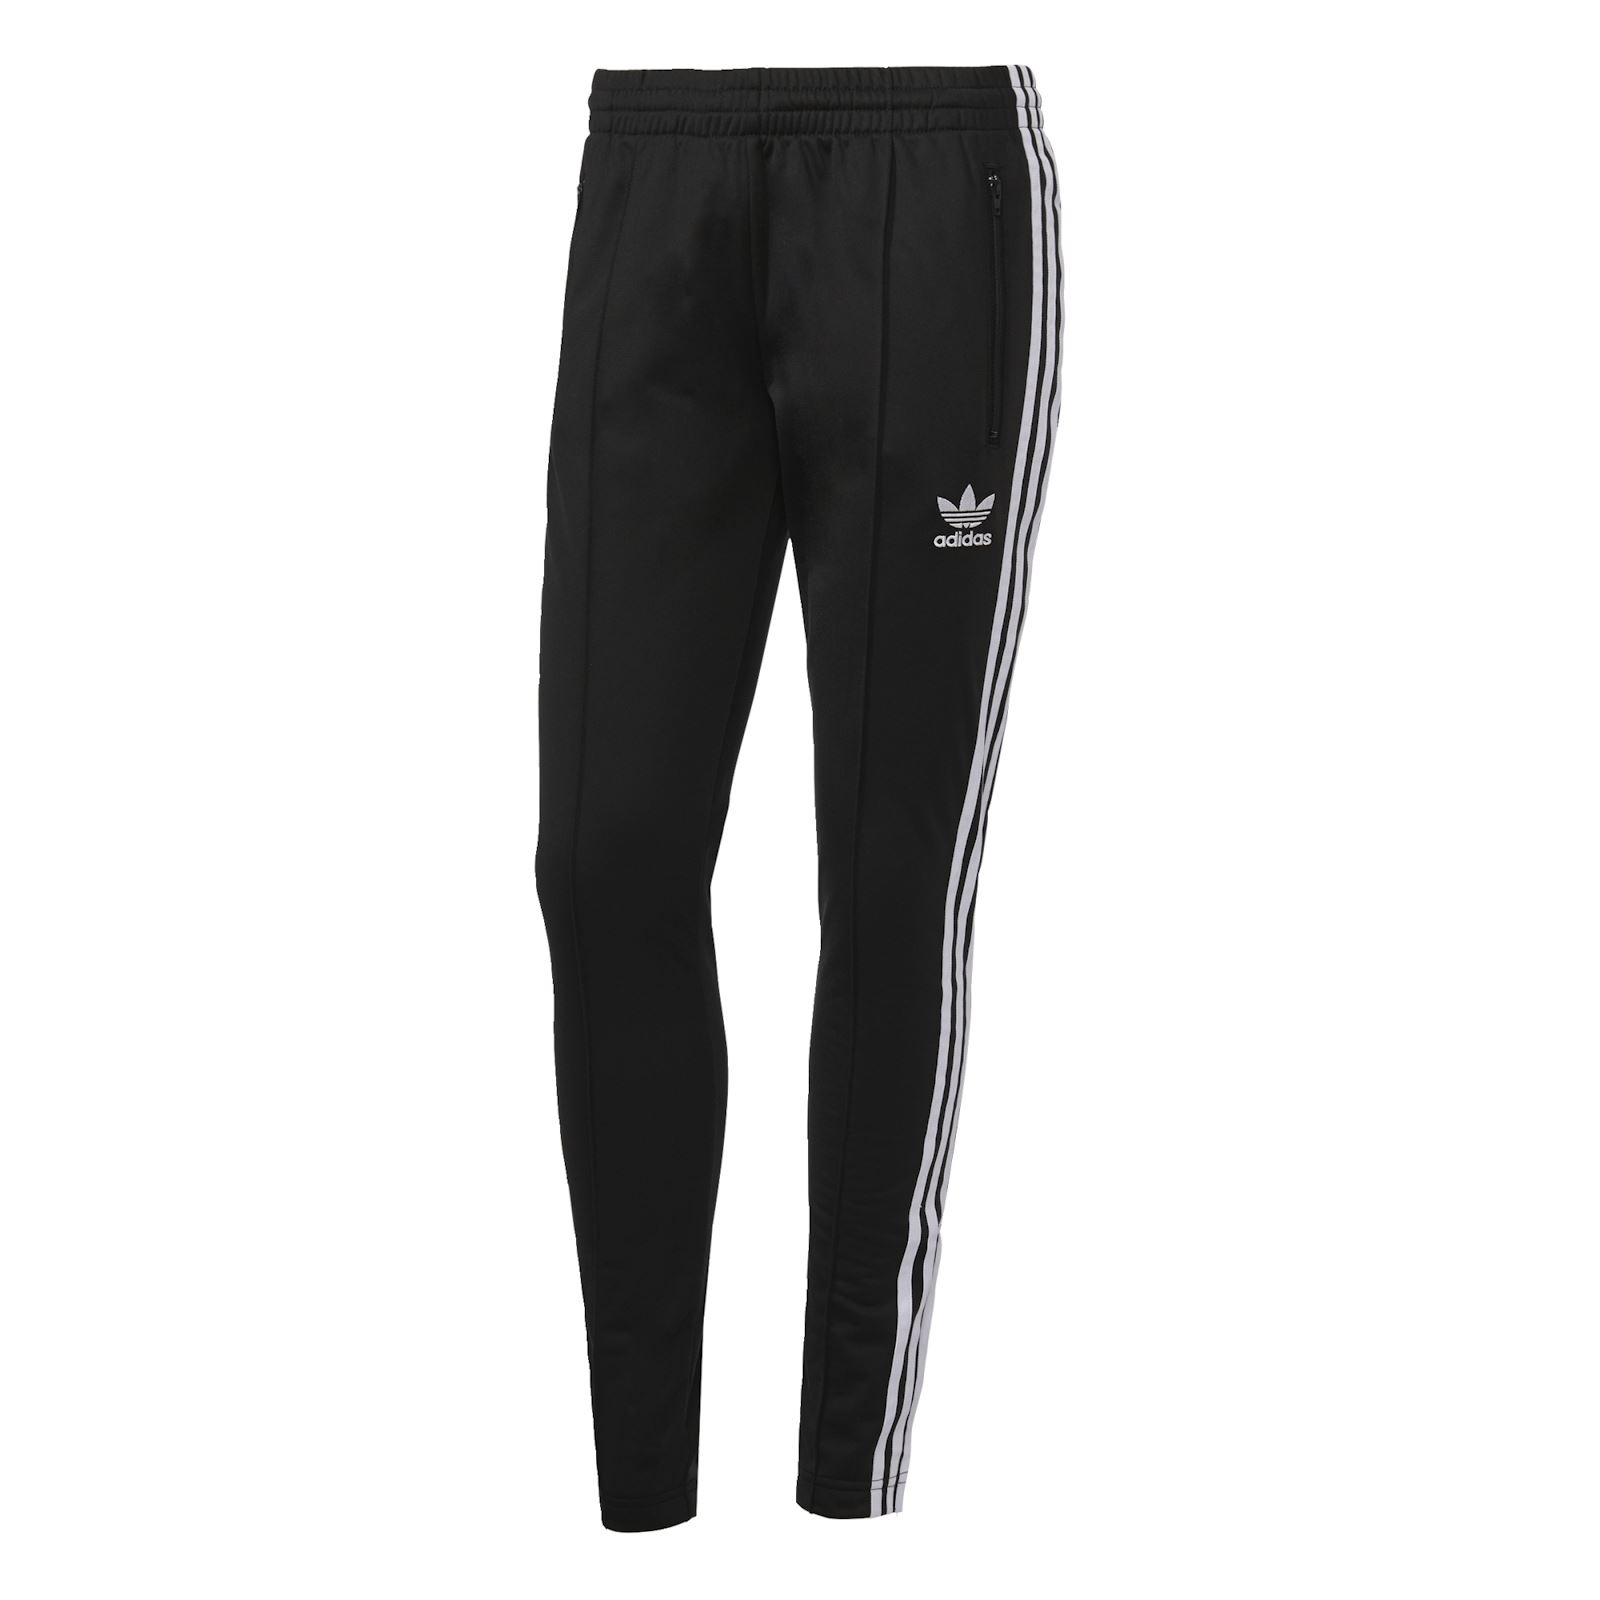 Adidas originals pantalon jogging noir brandalley for Pantalon carreaux noir et blanc